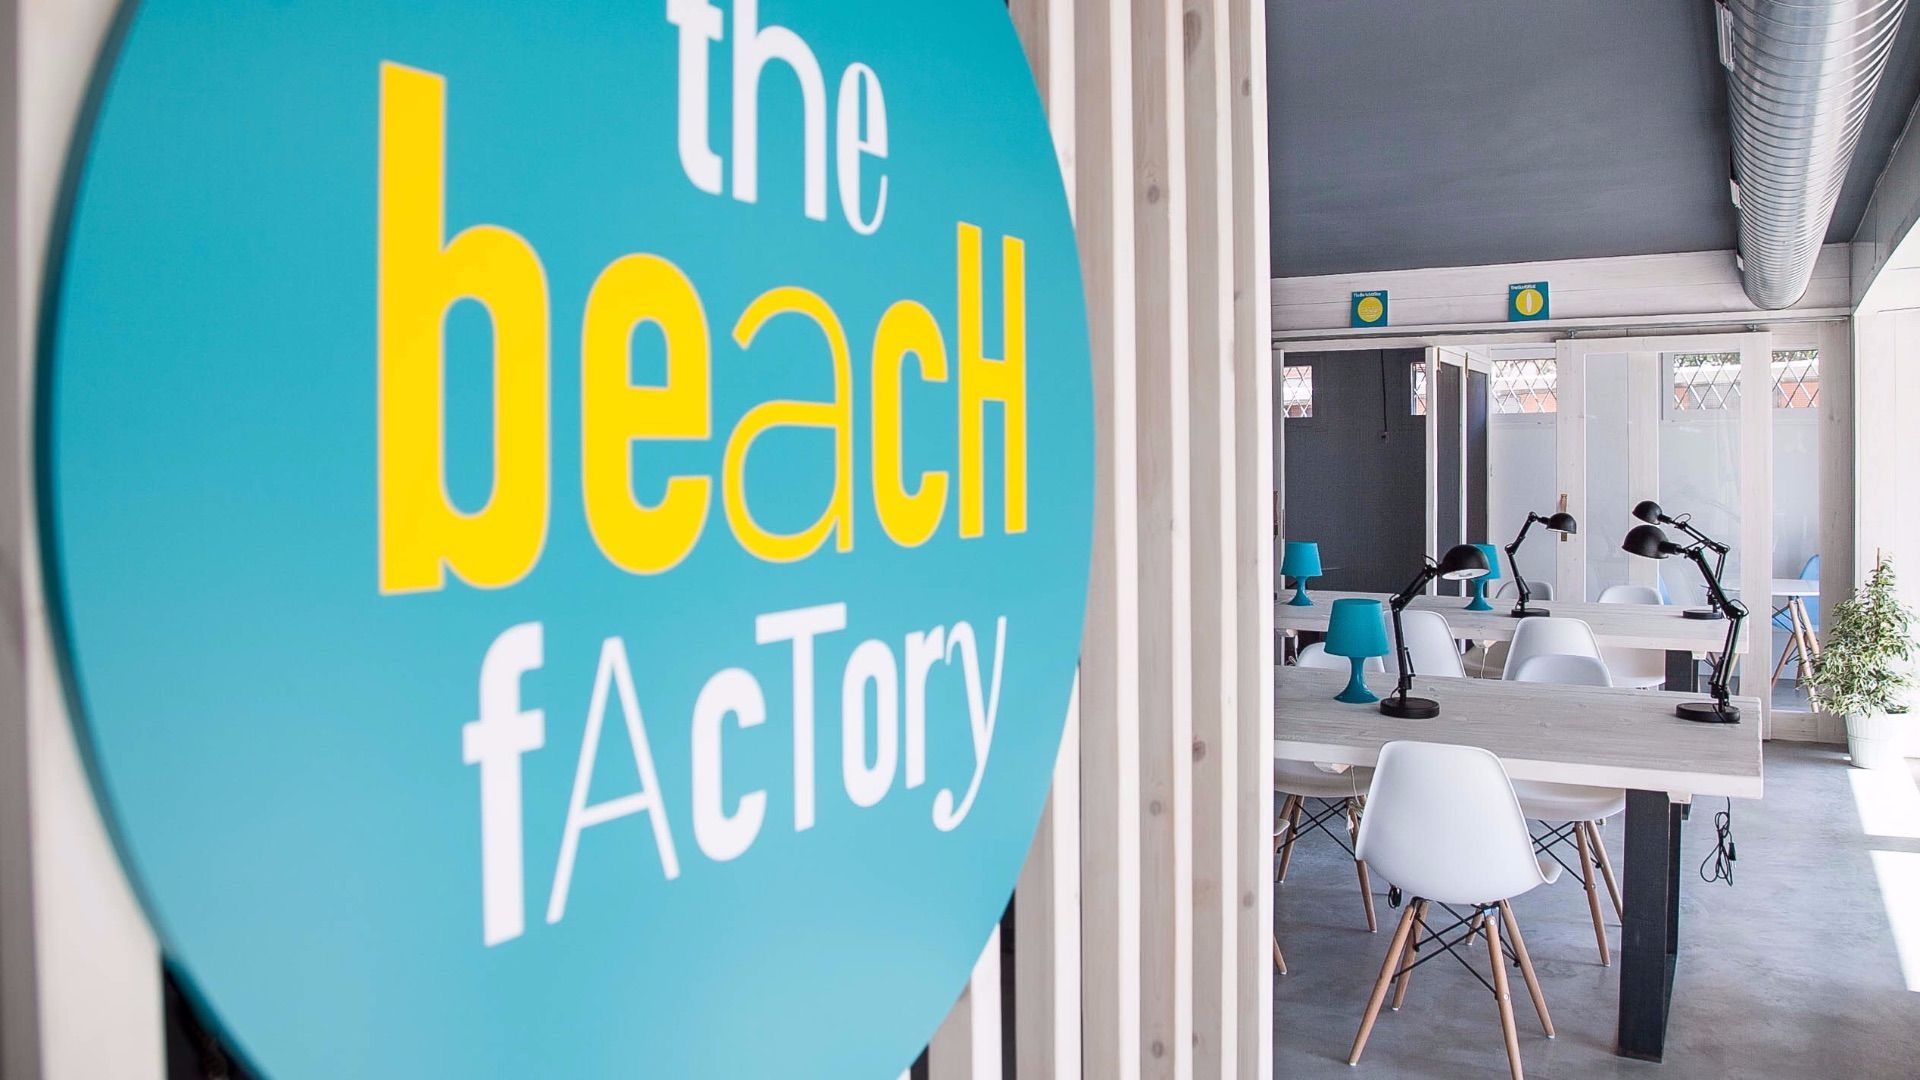 The Beach Factory